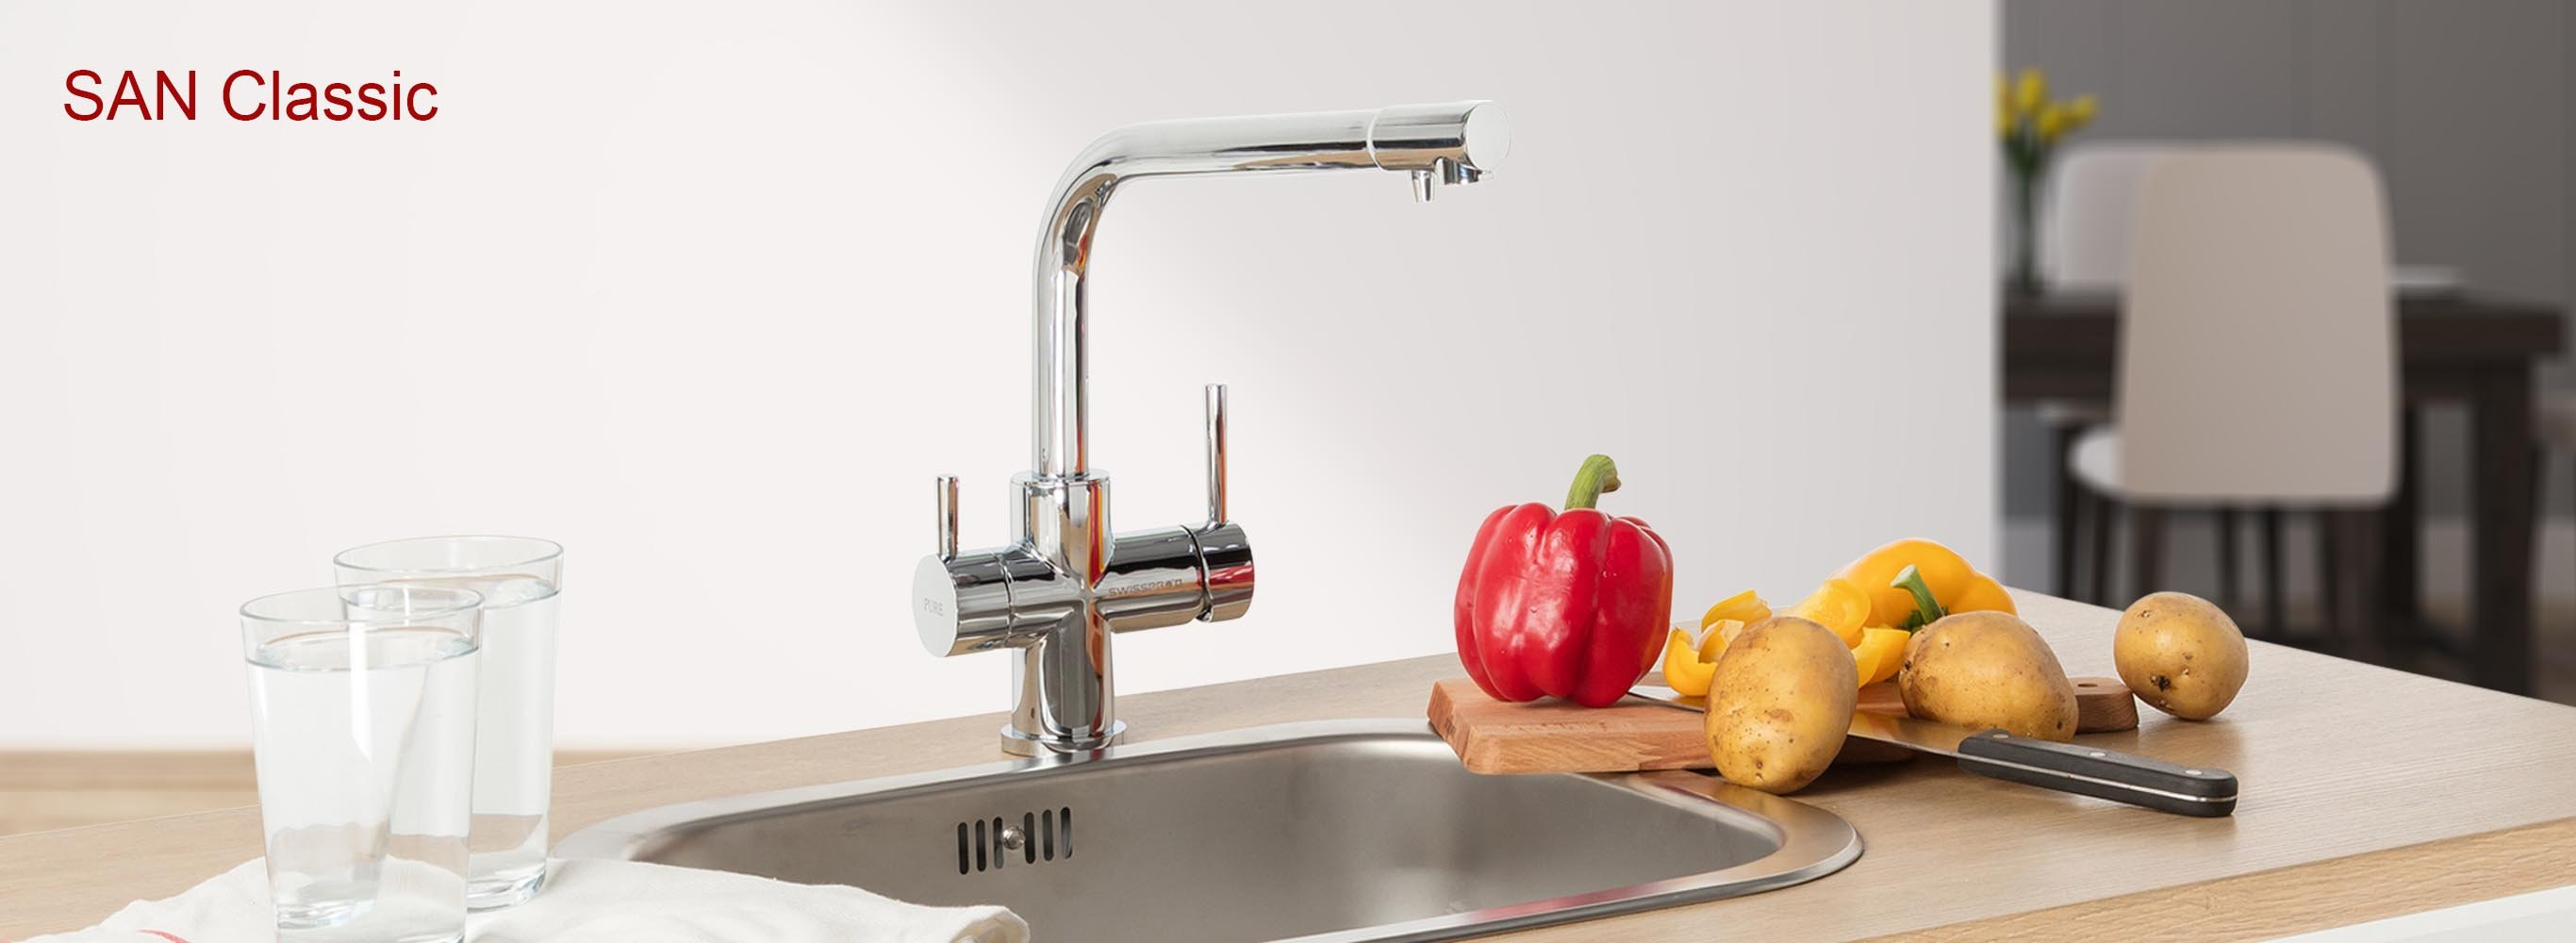 SAN Classic - All-In-One Faucet